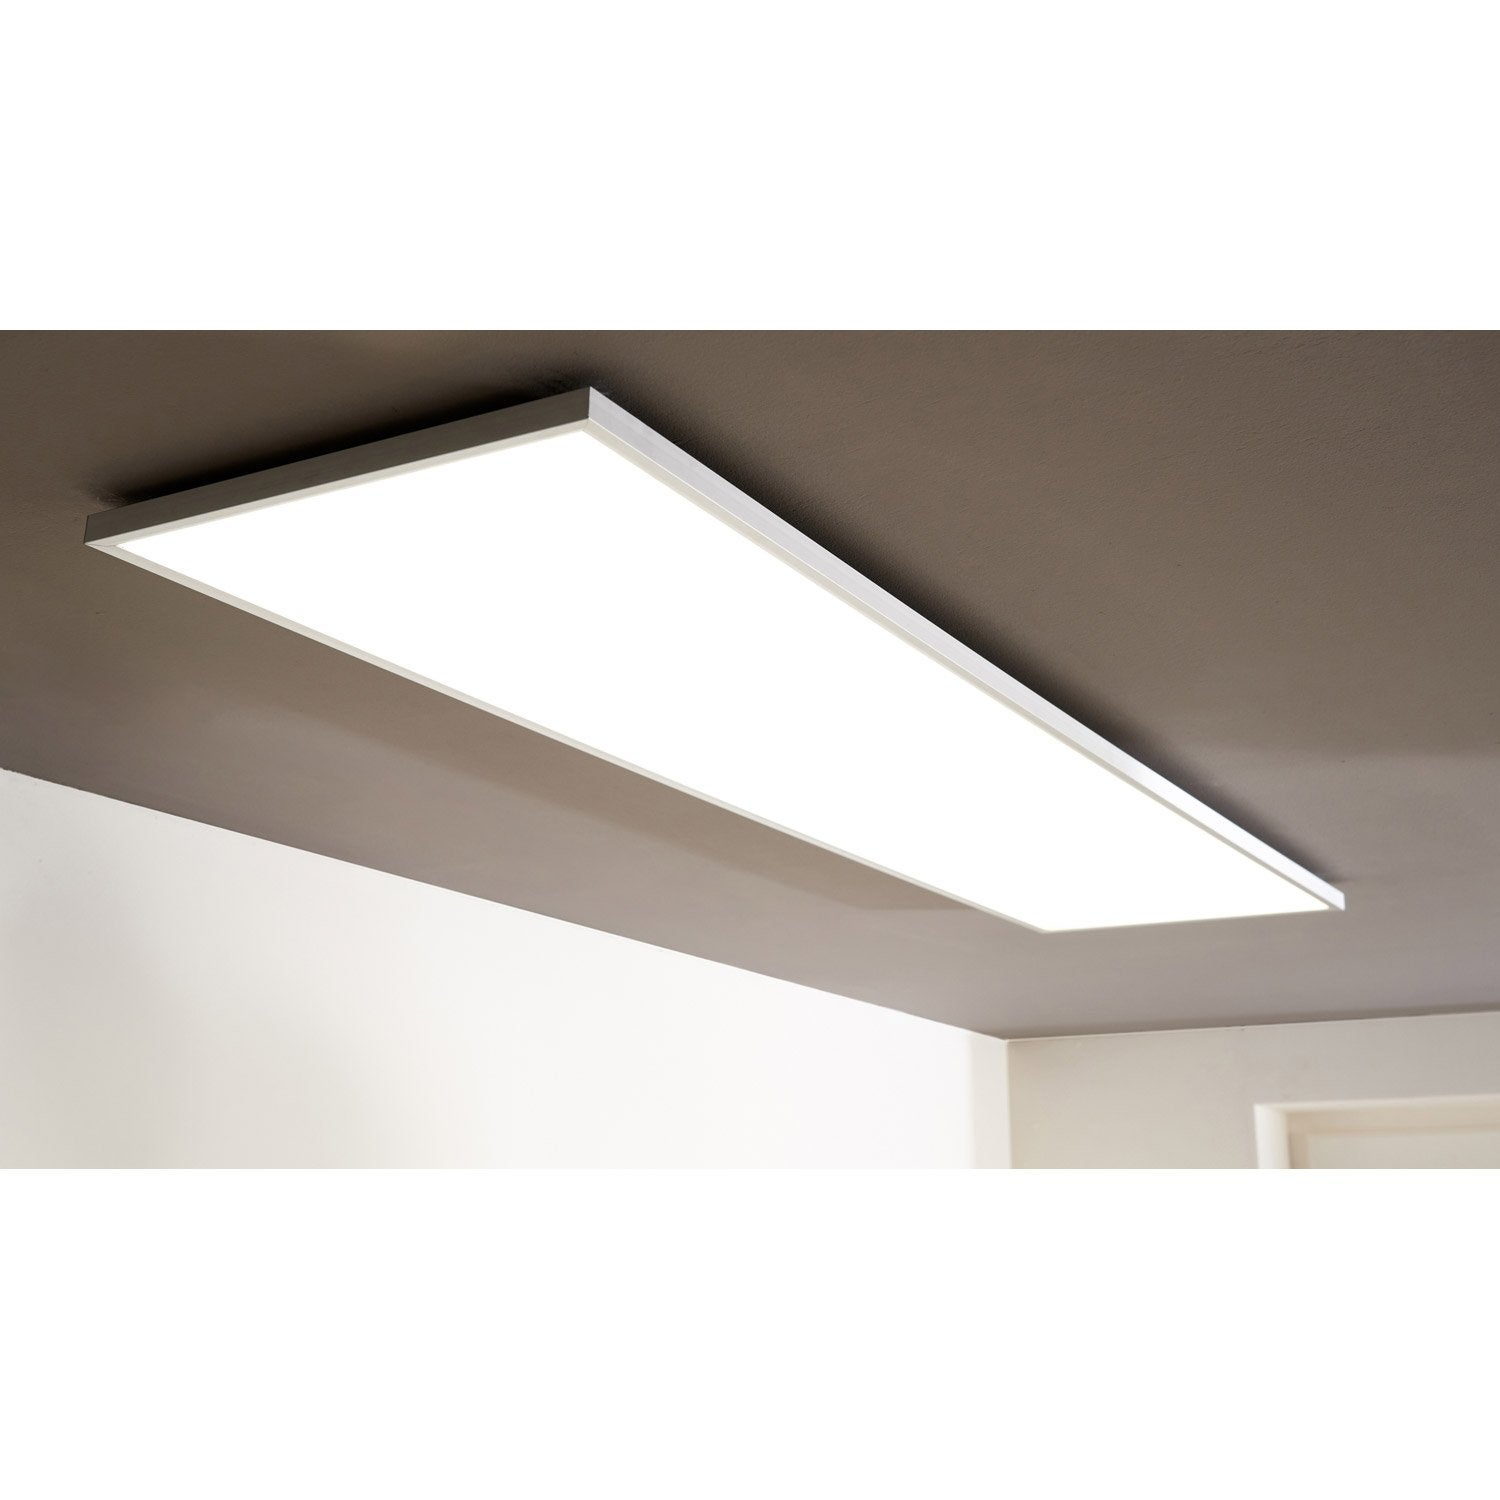 Panneau Led Int Gr E Gdansk Inspire Rectangle 120 X 30 Cm Intensit